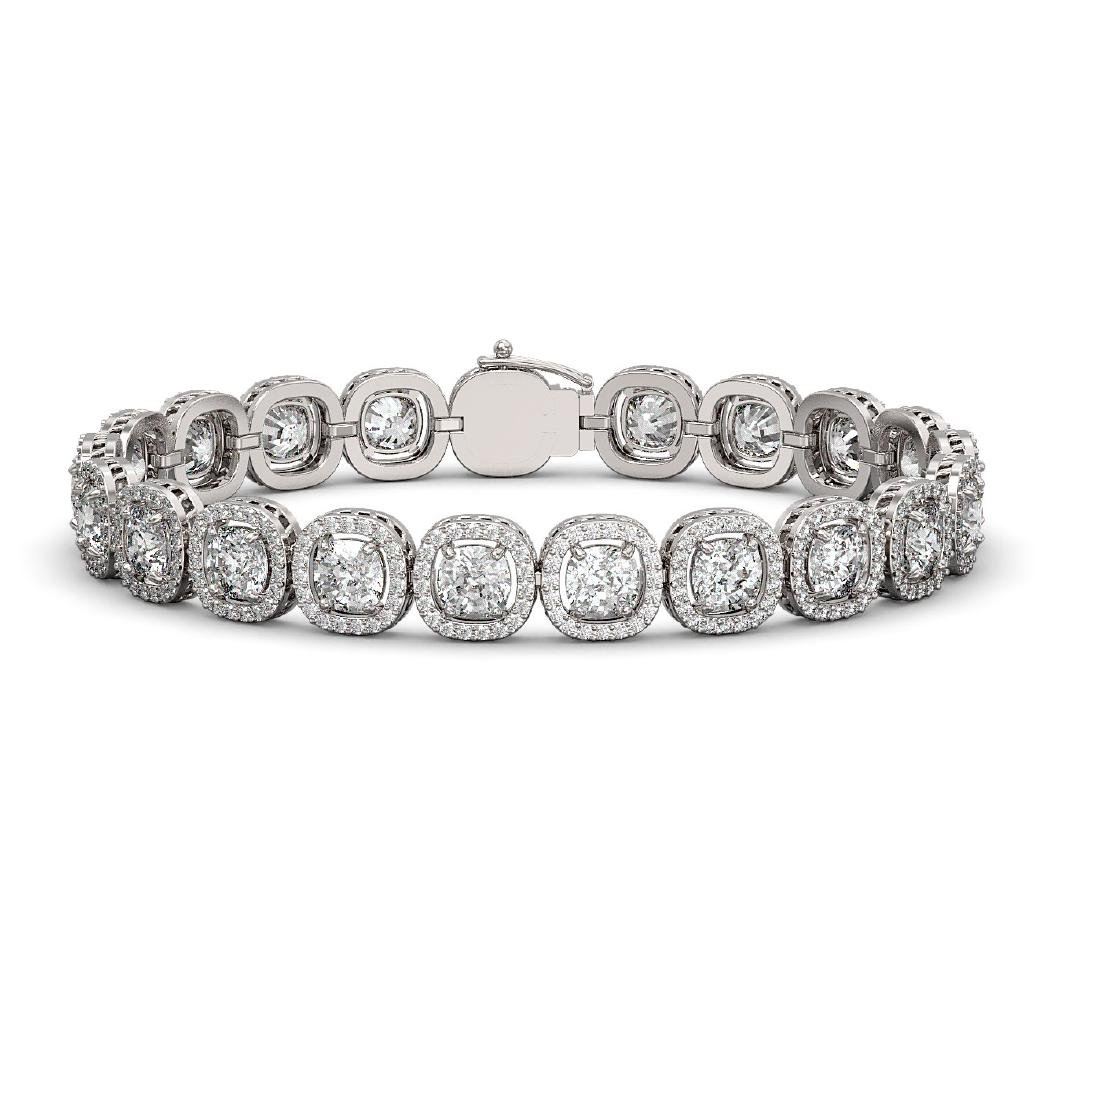 14.41 CTW Cushion Diamond Designer Bracelet 18K White